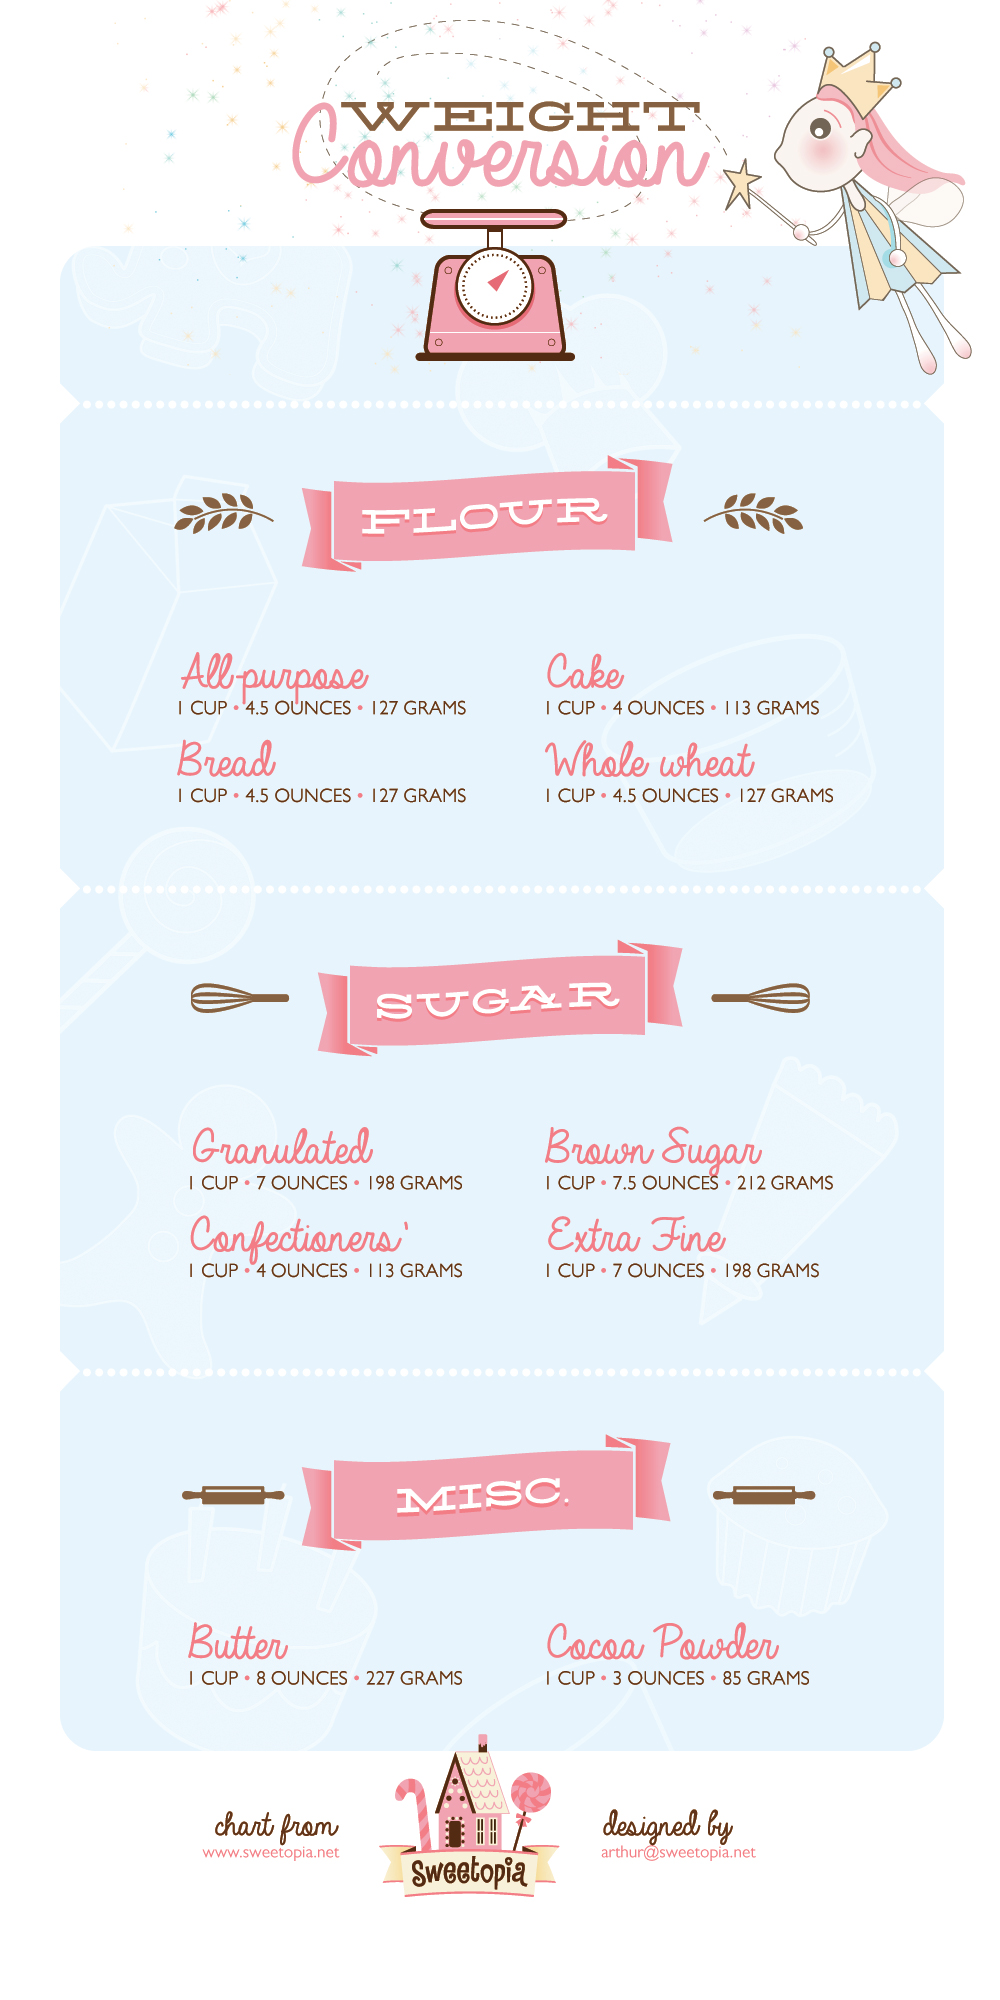 Kitchen Conversion Series Length Chart Sweetopia